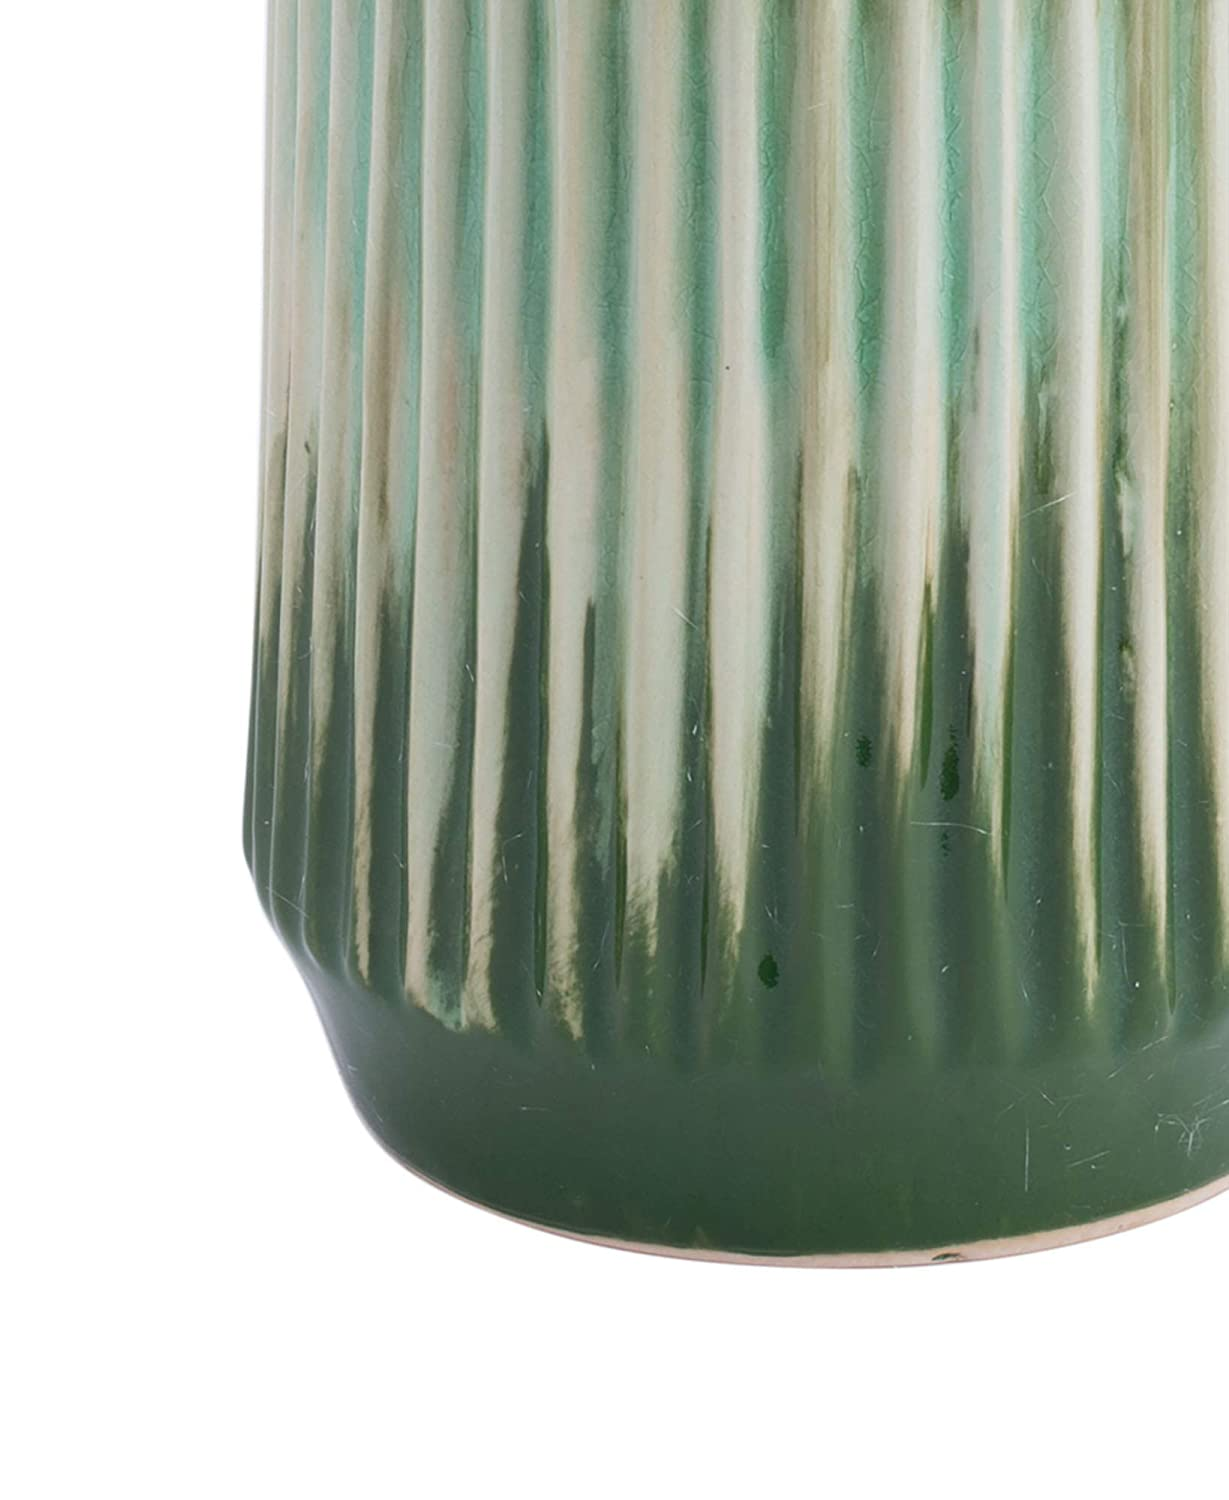 Green Zuo A11429 Vases